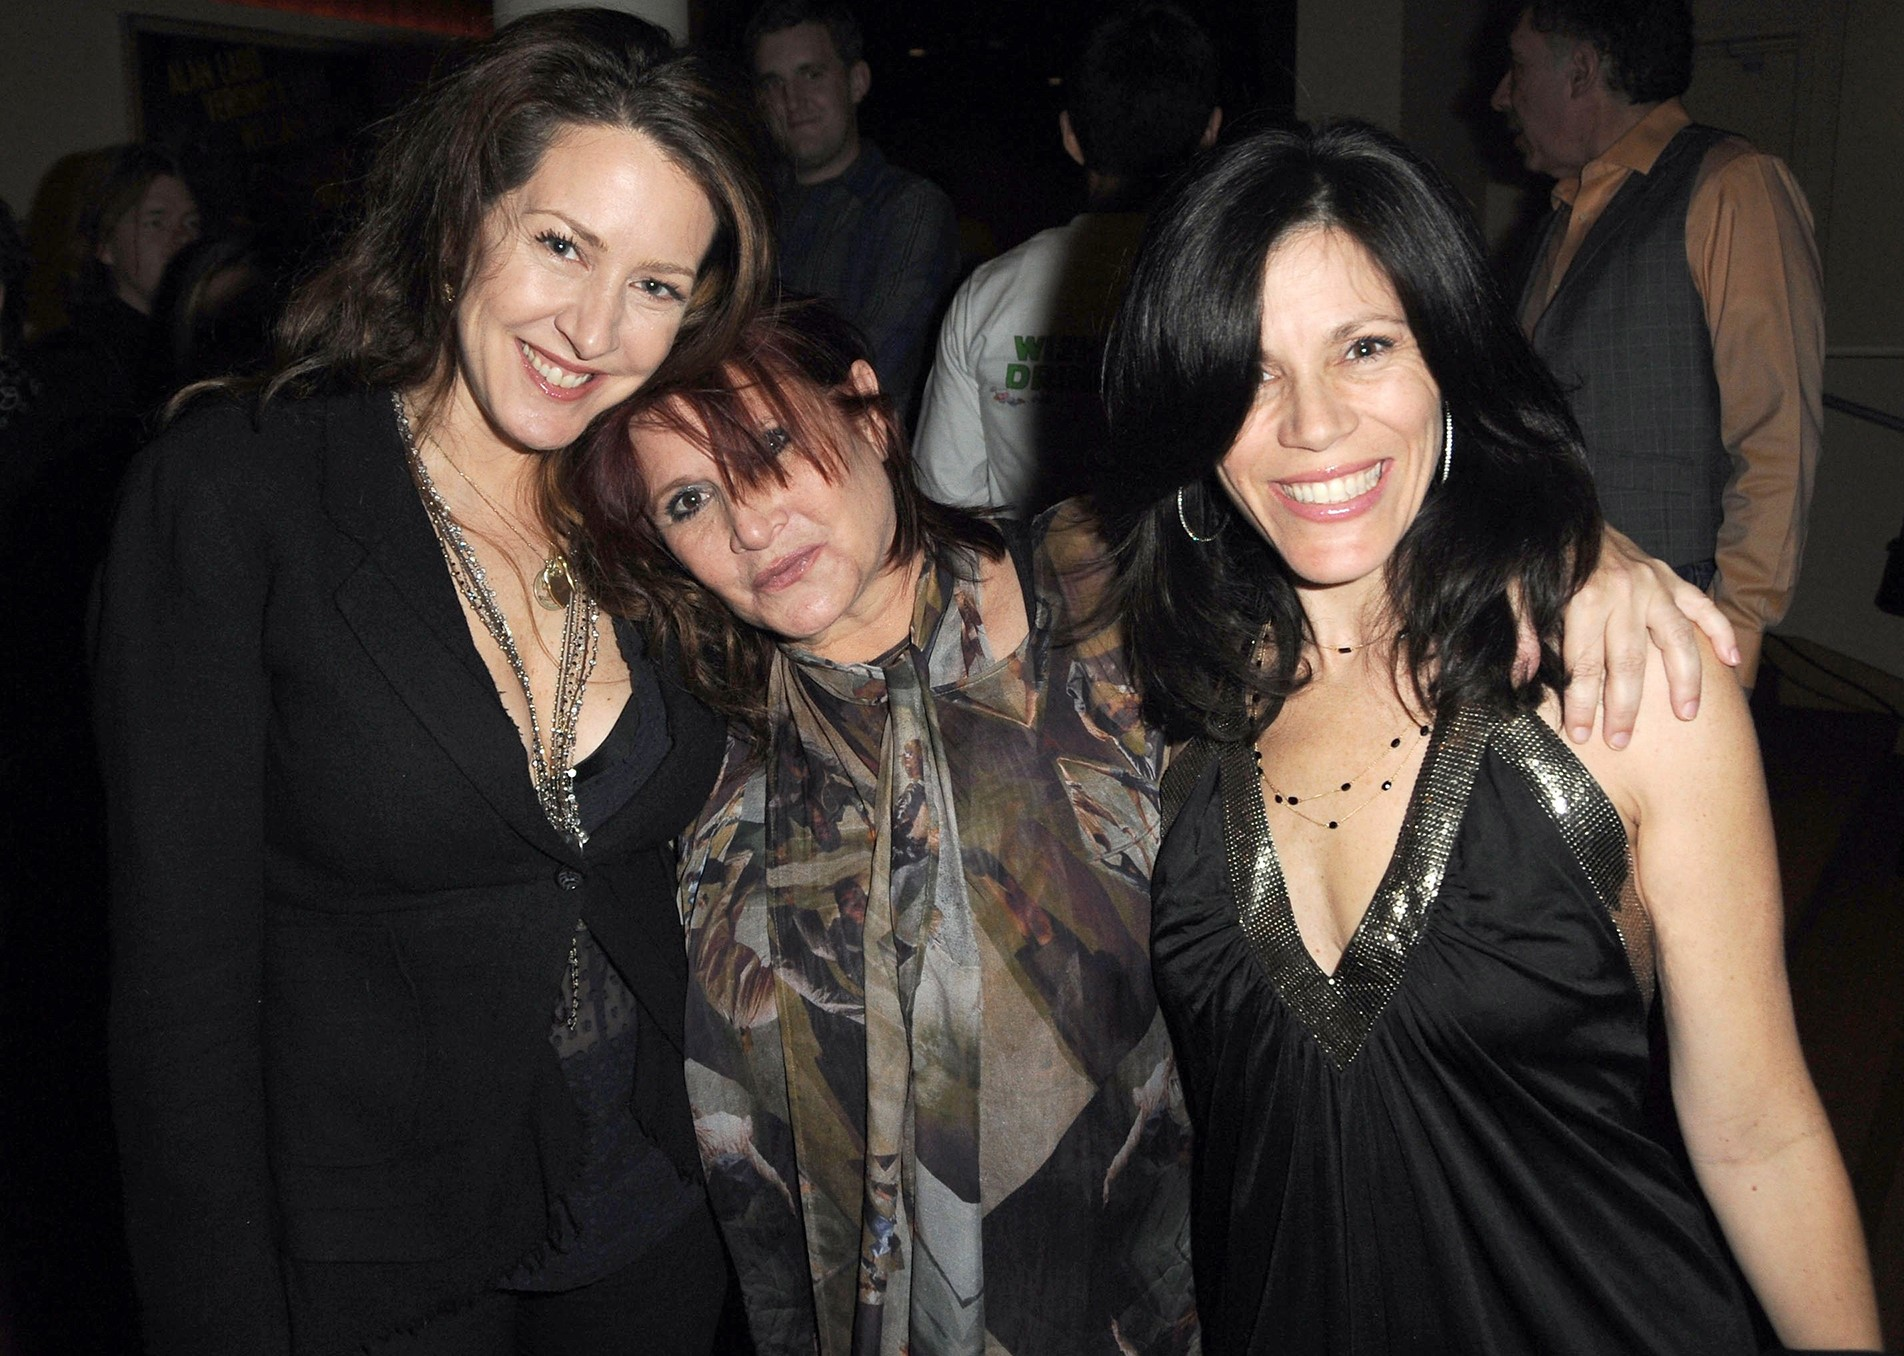 Carrie Fisher, Joely Fisher, and Tricia Leigh Fisher at an event for Carrie Fisher: Wishful Drinking (2010)